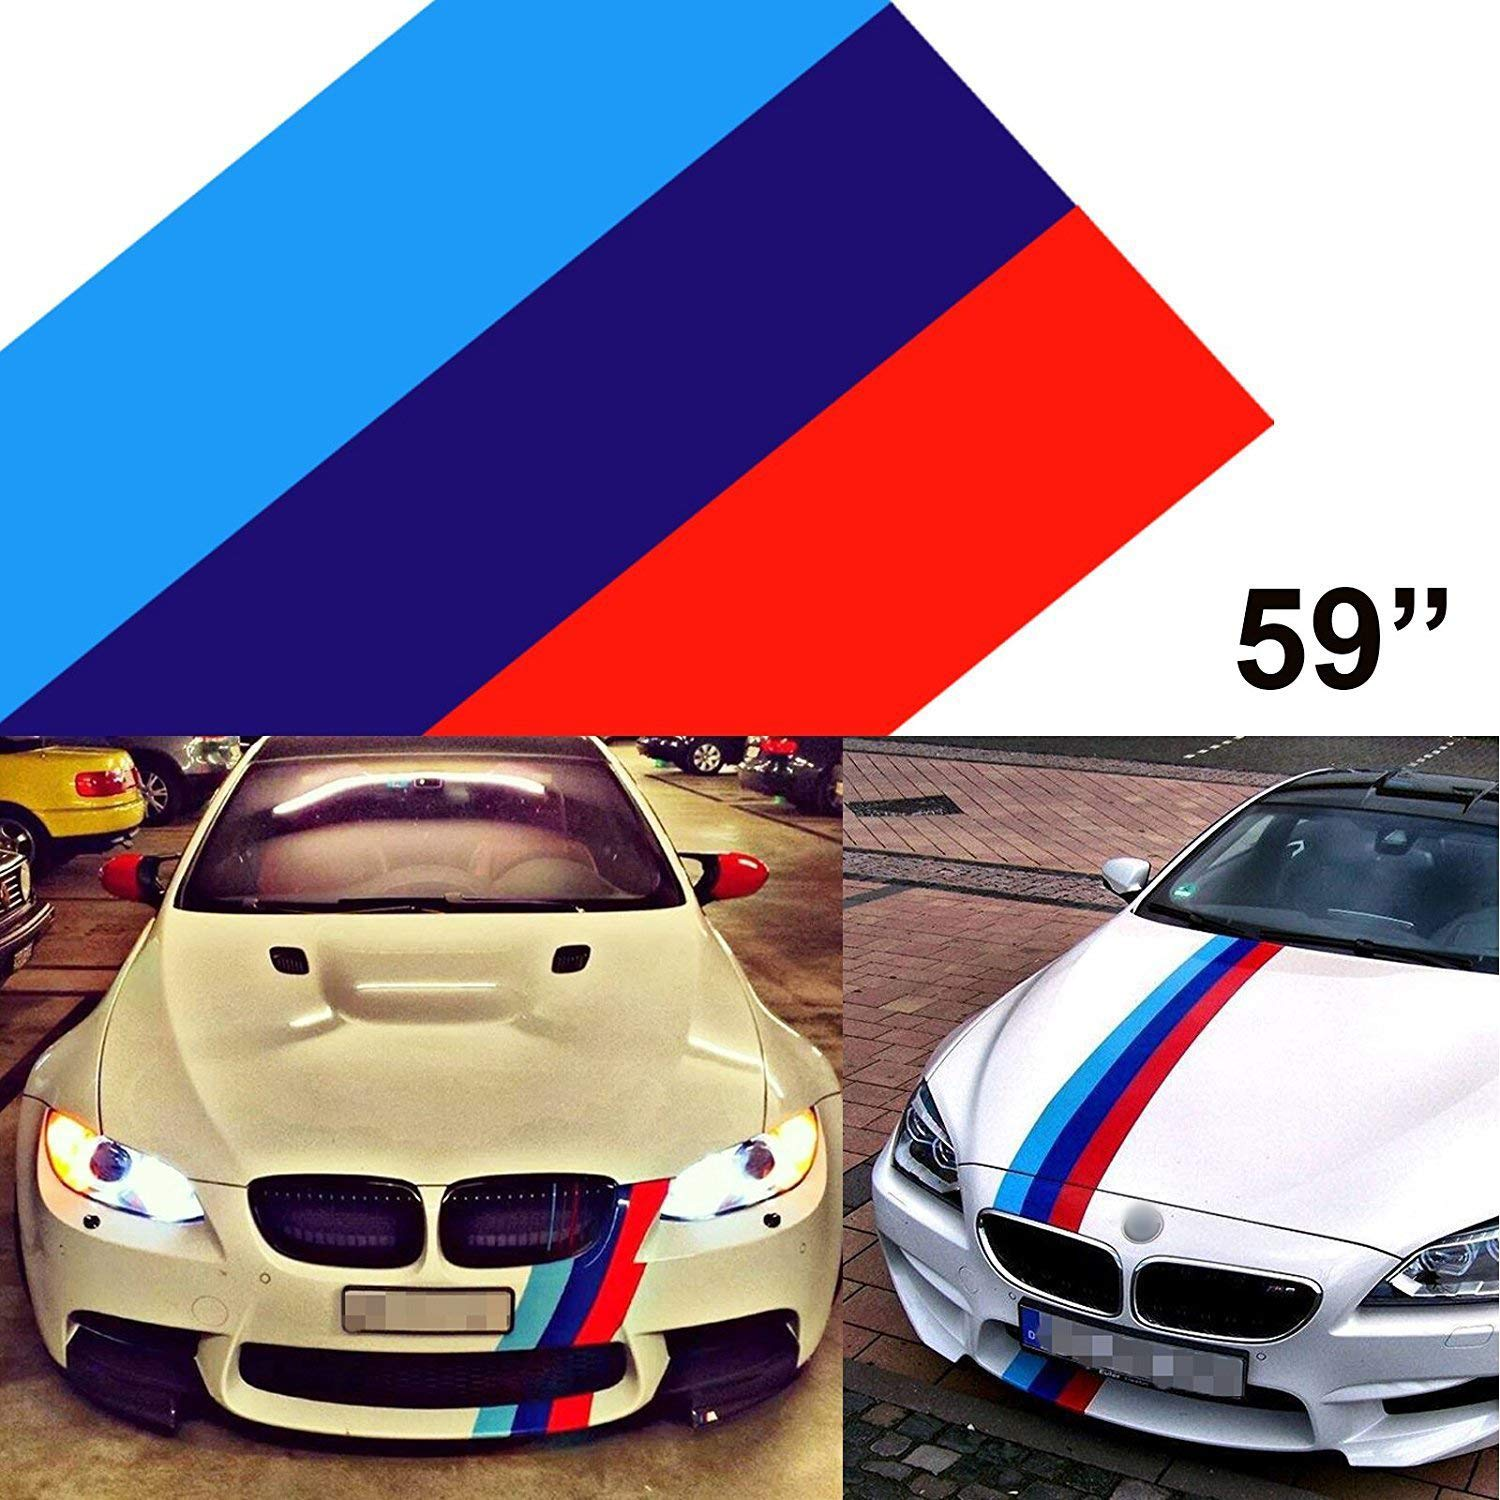 1x 59 M Colored Stripe Car Sticker For Bmw Exterior Cosmetic Hood Roof Bumpers Buy Online In Martinique At Martinique Desertcart Com Productid 53520389